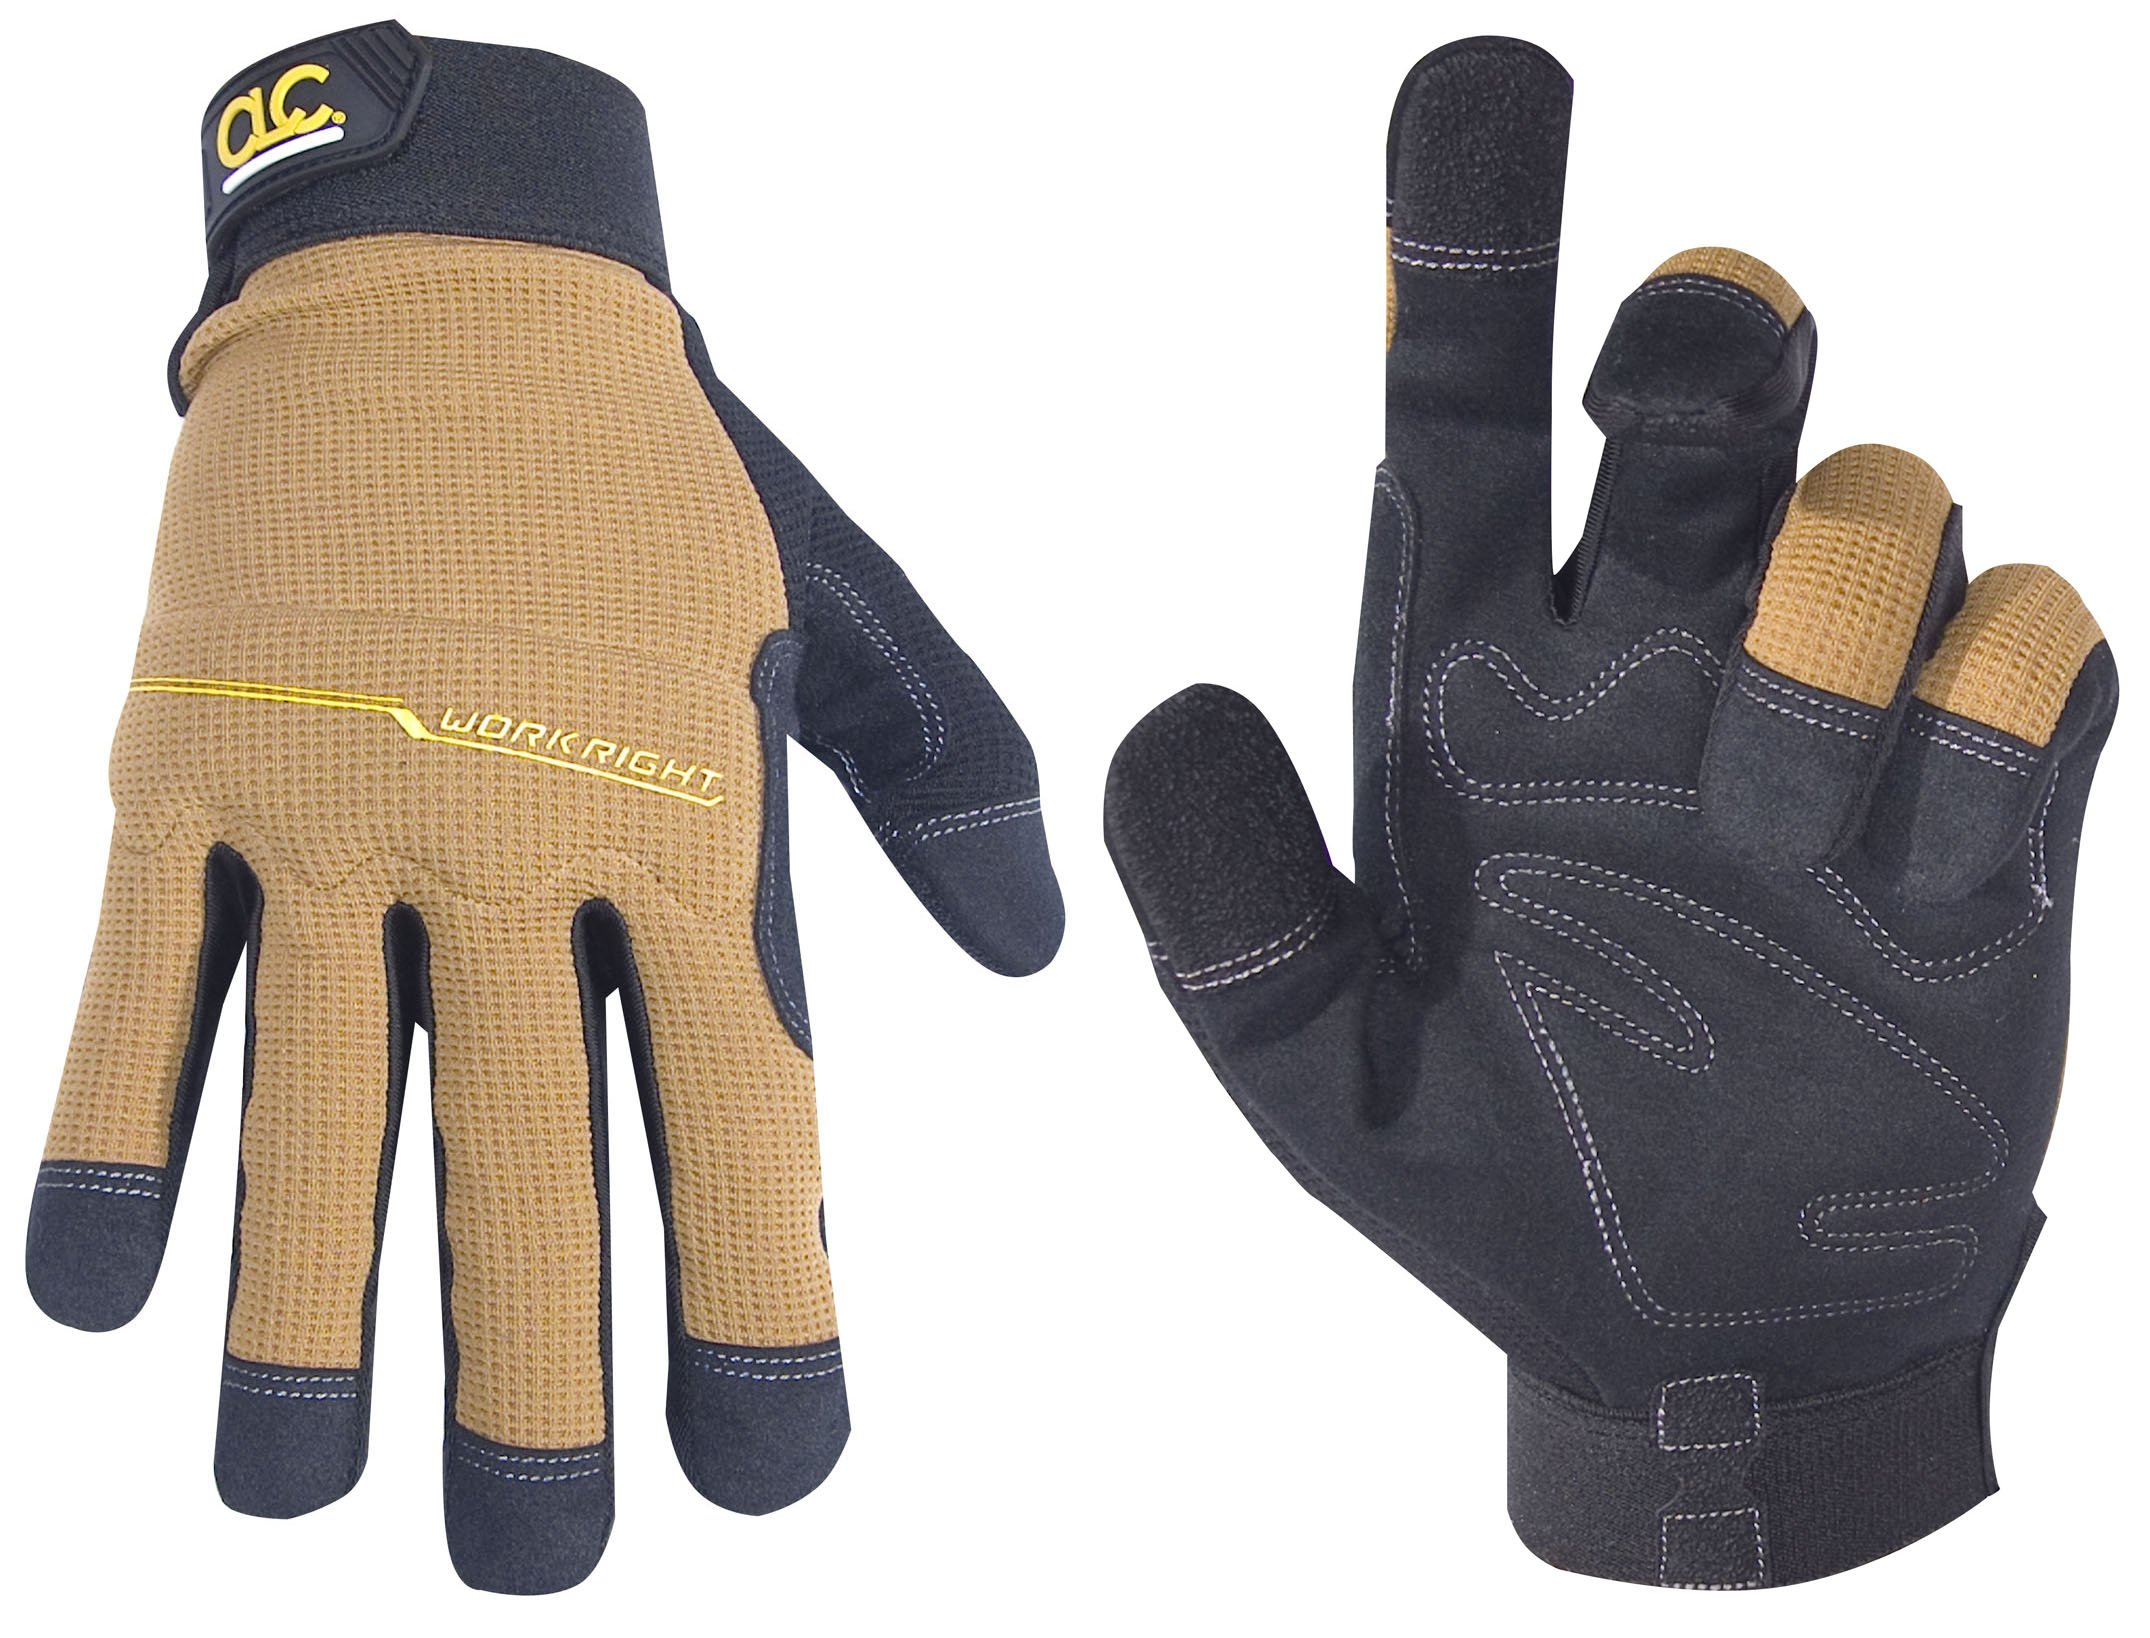 CLC Custom Leathercraft 124M Workright Flex Grip Work Gloves, Shrink Resistant, Improved Dexterity, Tough, Stretchable, Excellent Grip